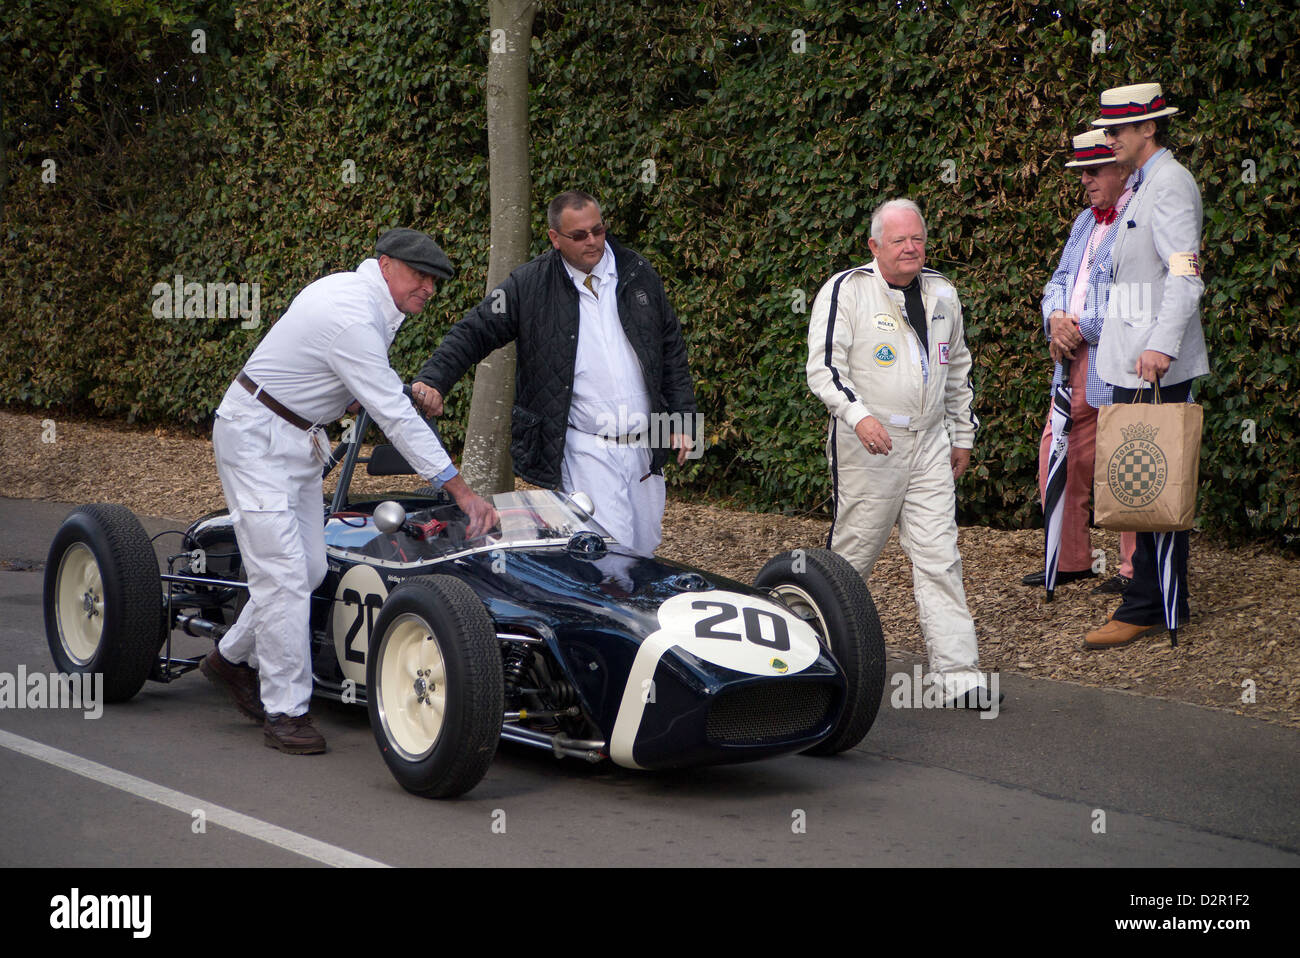 F1 Cars Stock Photos Amp F1 Cars Stock Images Alamy